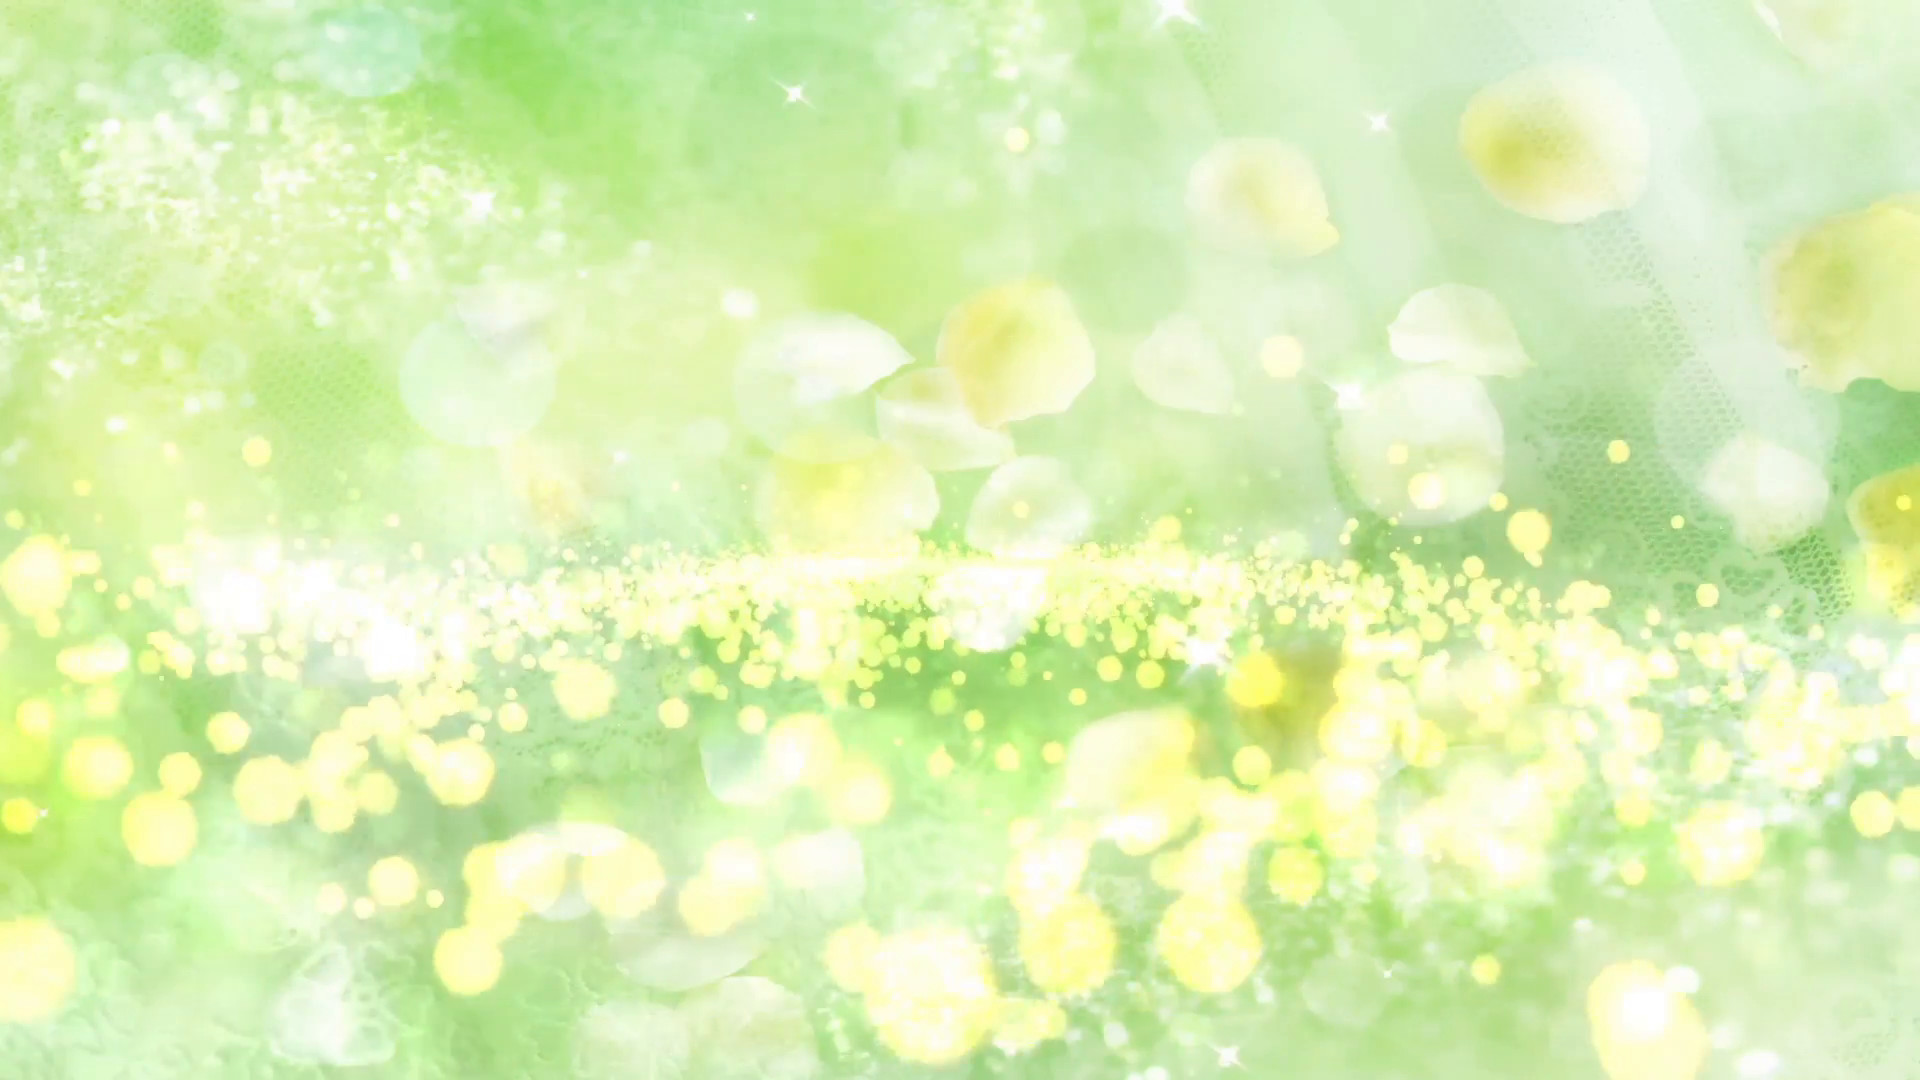 1920x1080 Particle Light Flower Background 01